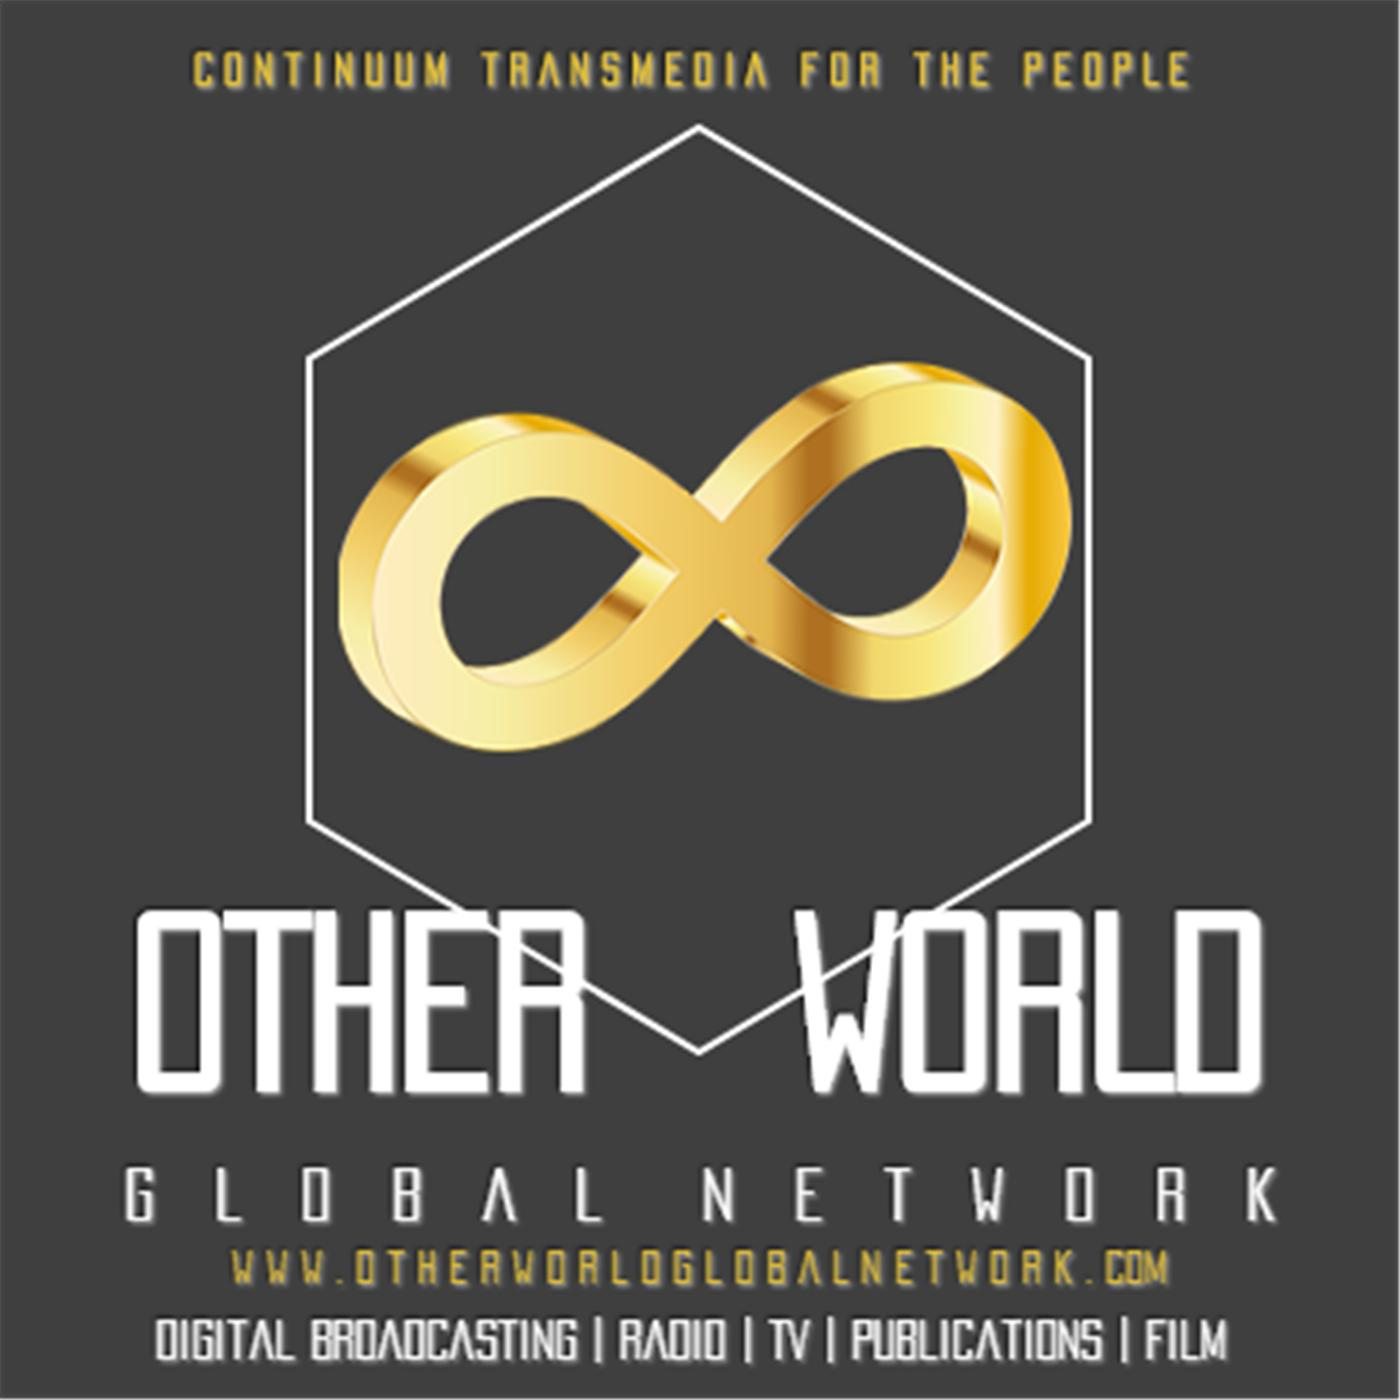 OTHER WORLD GLOBAL NETWORK | Listen via Stitcher for Podcasts